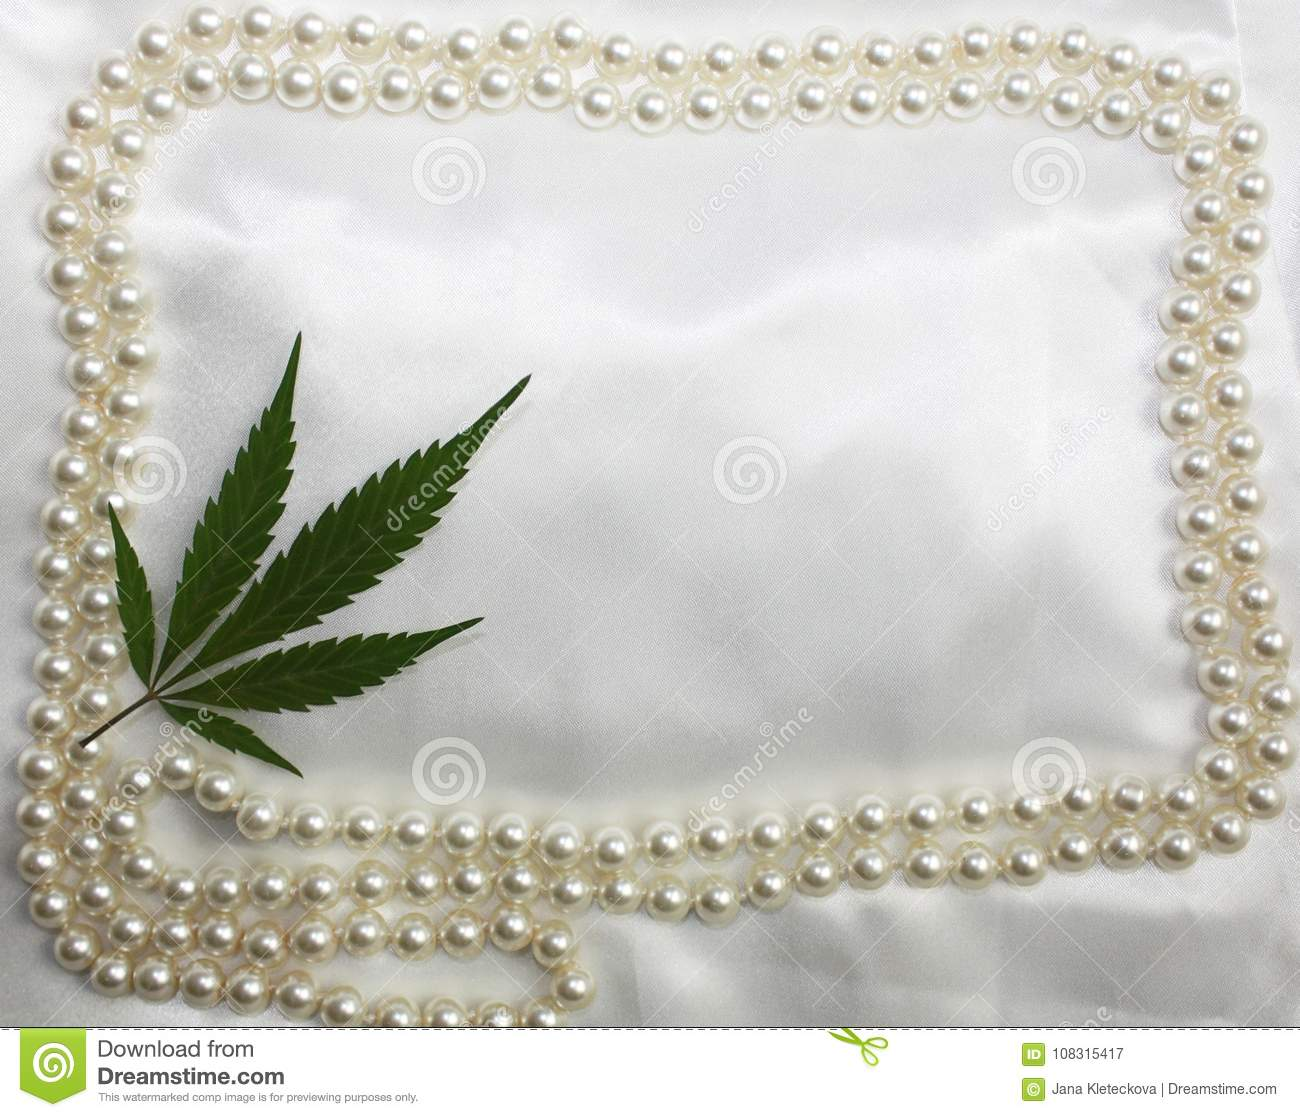 Wedding Hippie Original Bridal Satin White Background With Pearls Frame And Marijuana Pressed Leaf In Corner Invitation Card Fre Stock Image Image Of Delicate Beads 108315417